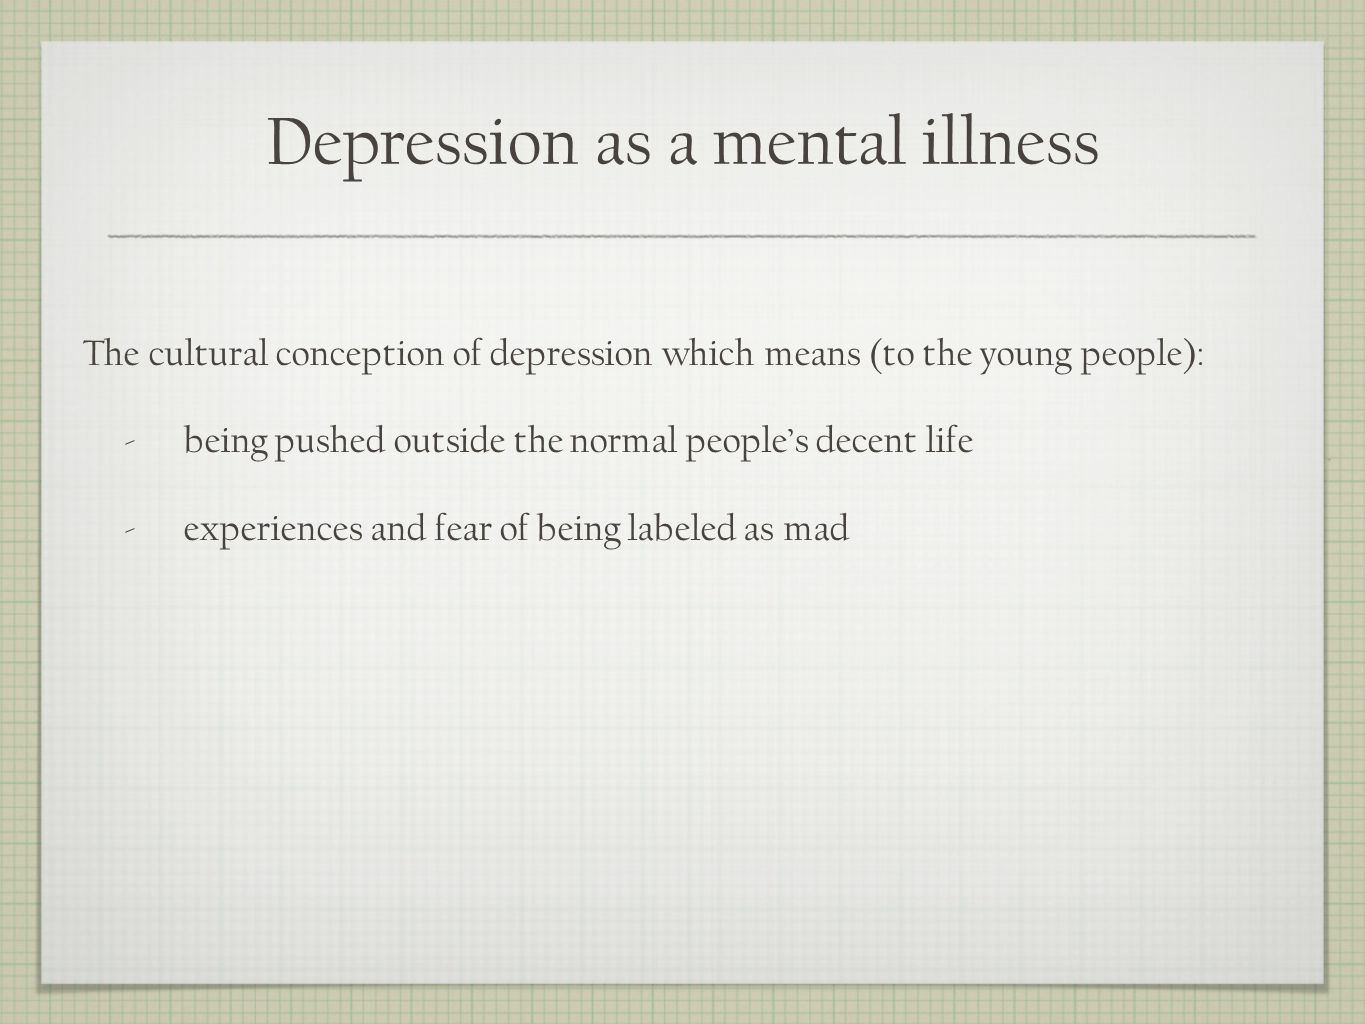 Depression as a mental illness The cultural conception of depression which means (to the young people): -being pushed outside the normal peoples decent life -experiences and fear of being labeled as mad